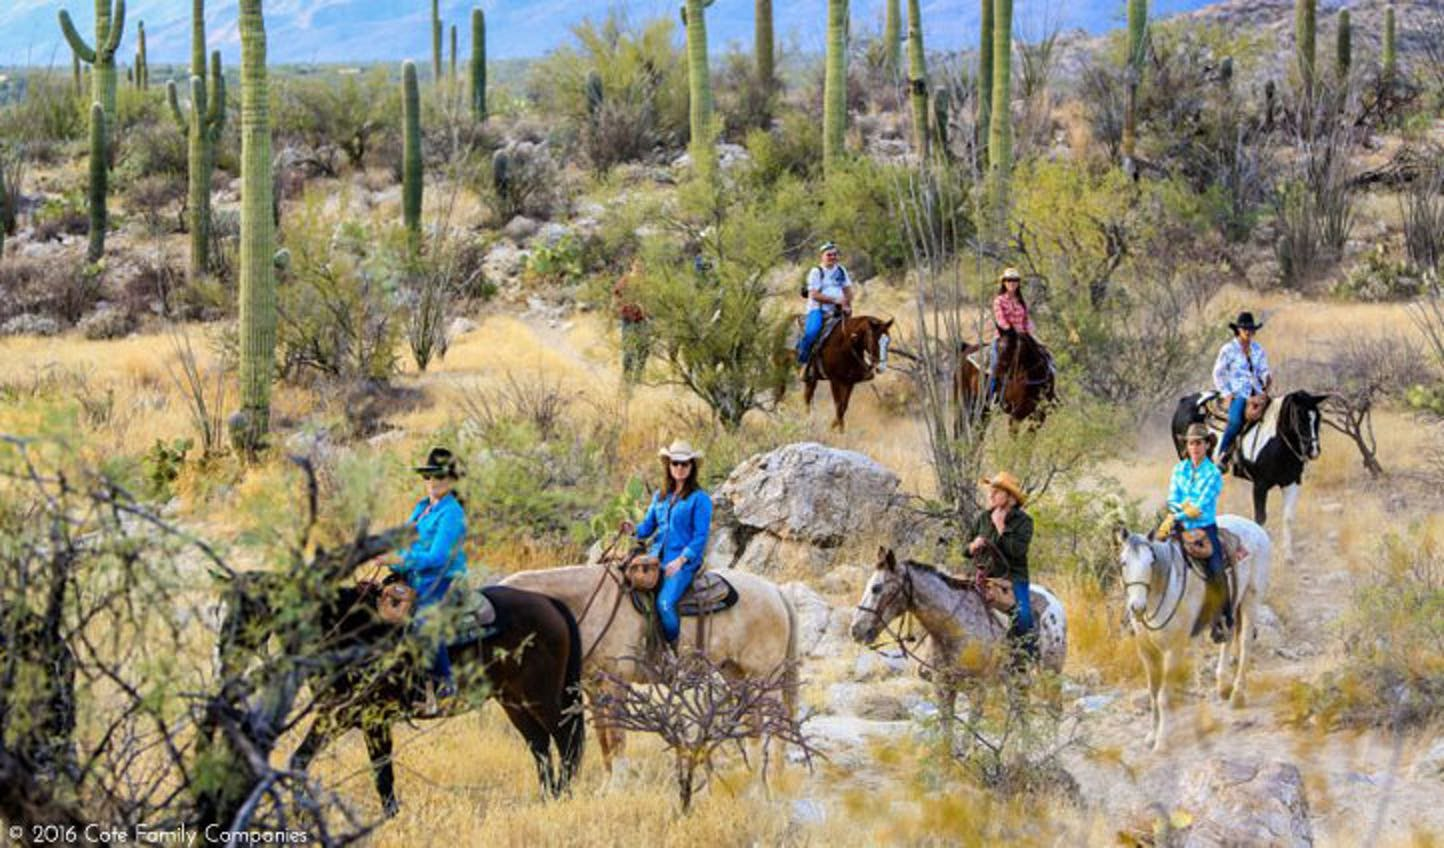 explore the desert surrounding tanque verde